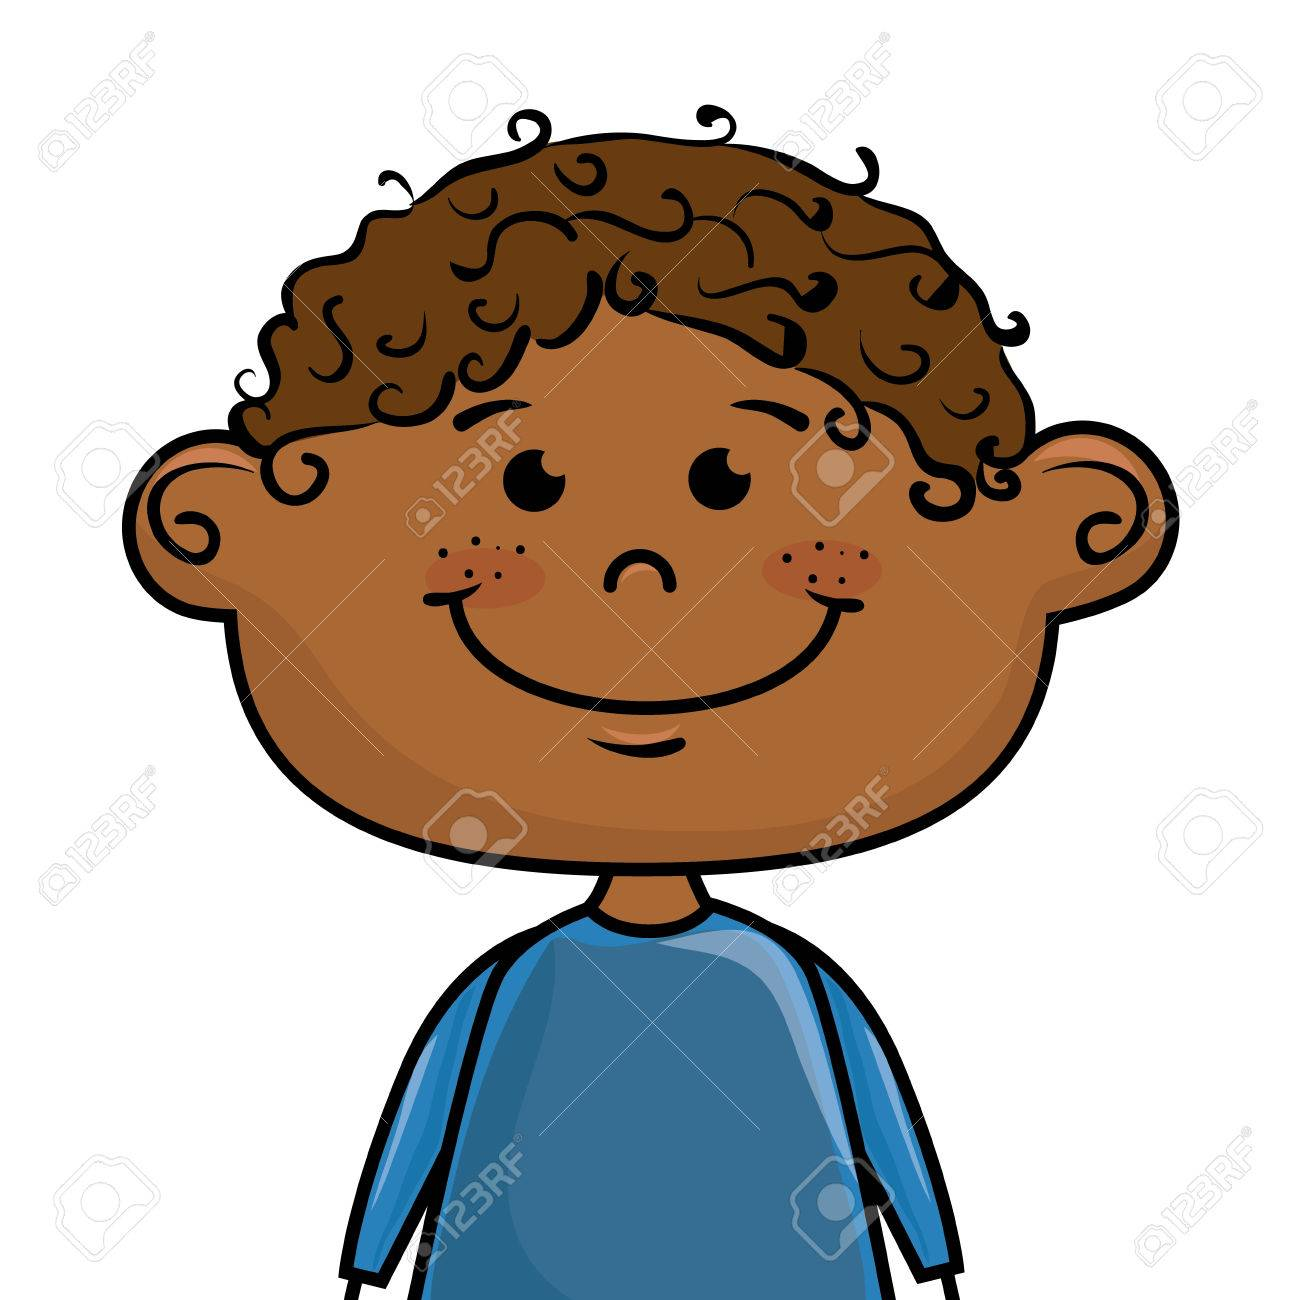 Child Happy Face Clipart.